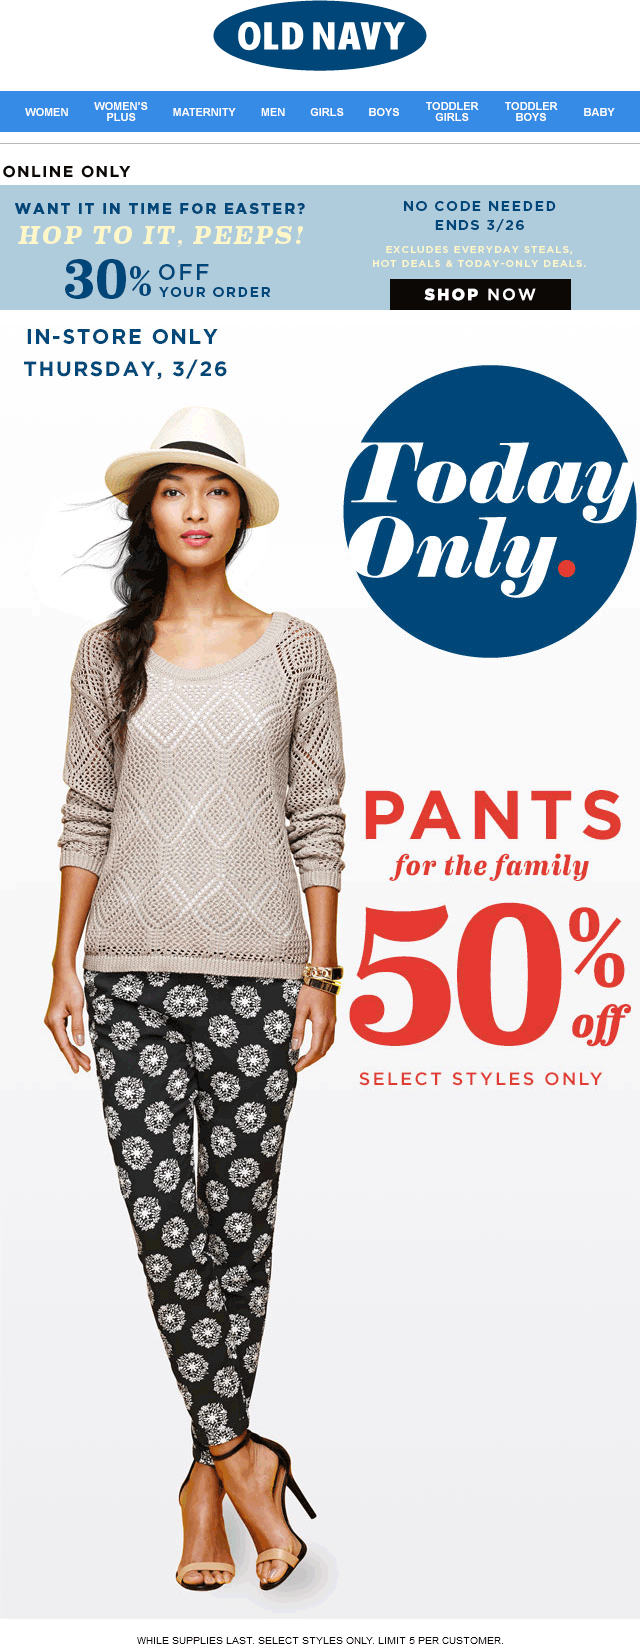 Old Navy Coupon September 2018 50% off pants today at Old Navy, also 30% off the tab online